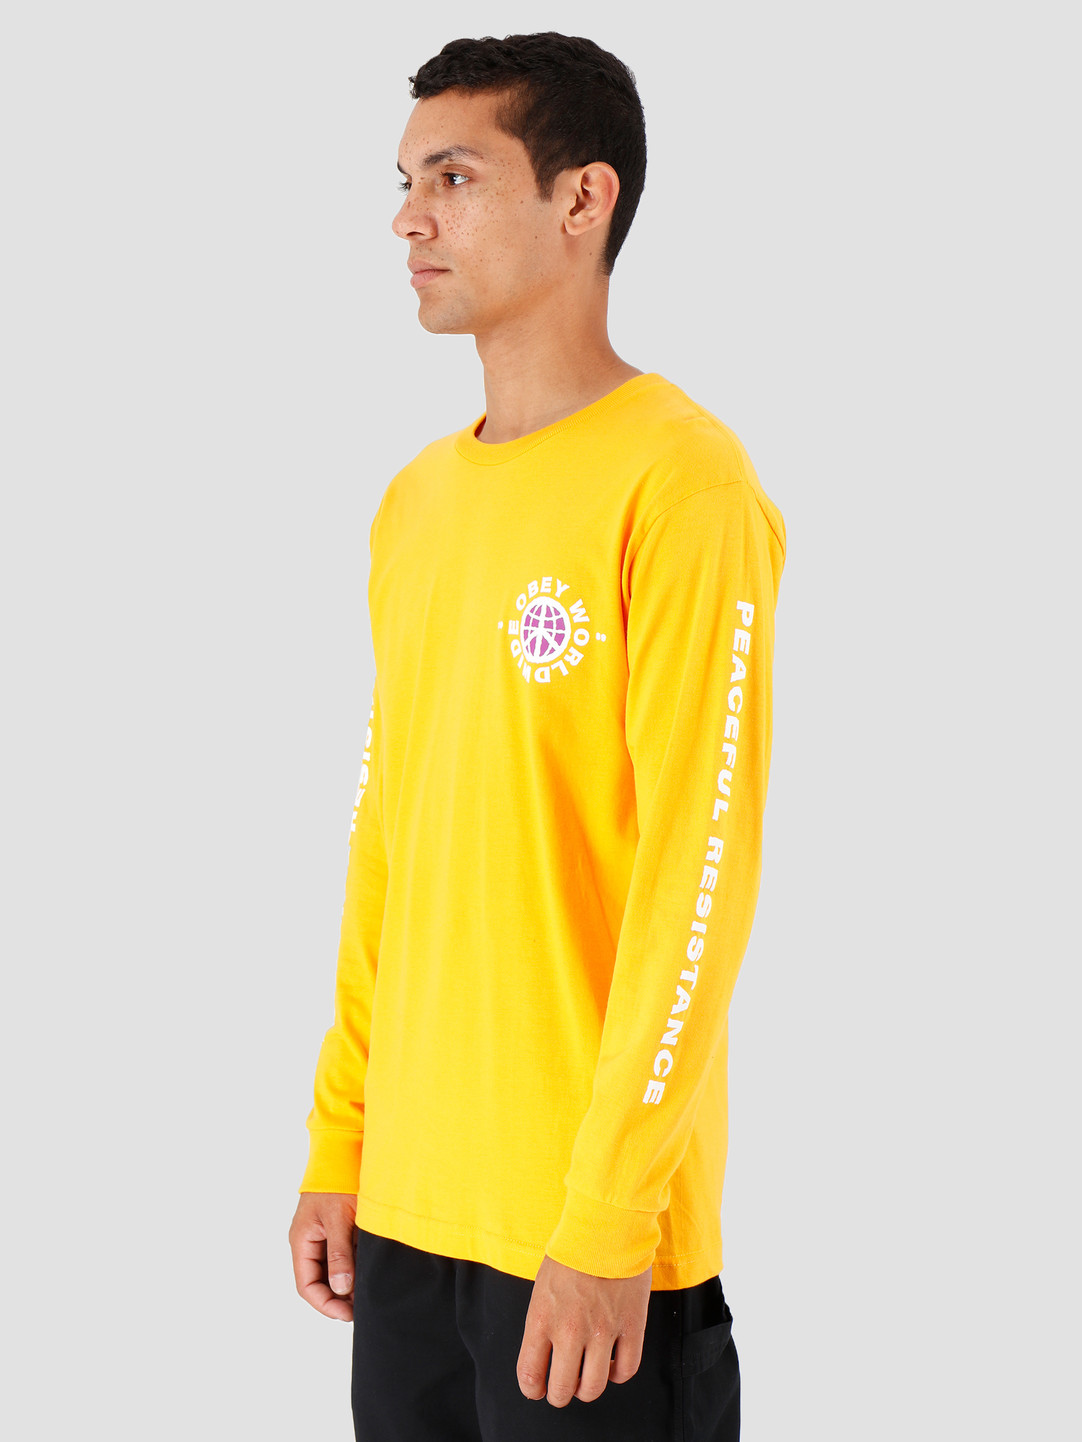 Obey Obey Peaceful Resistance Gold 164902070-GLD